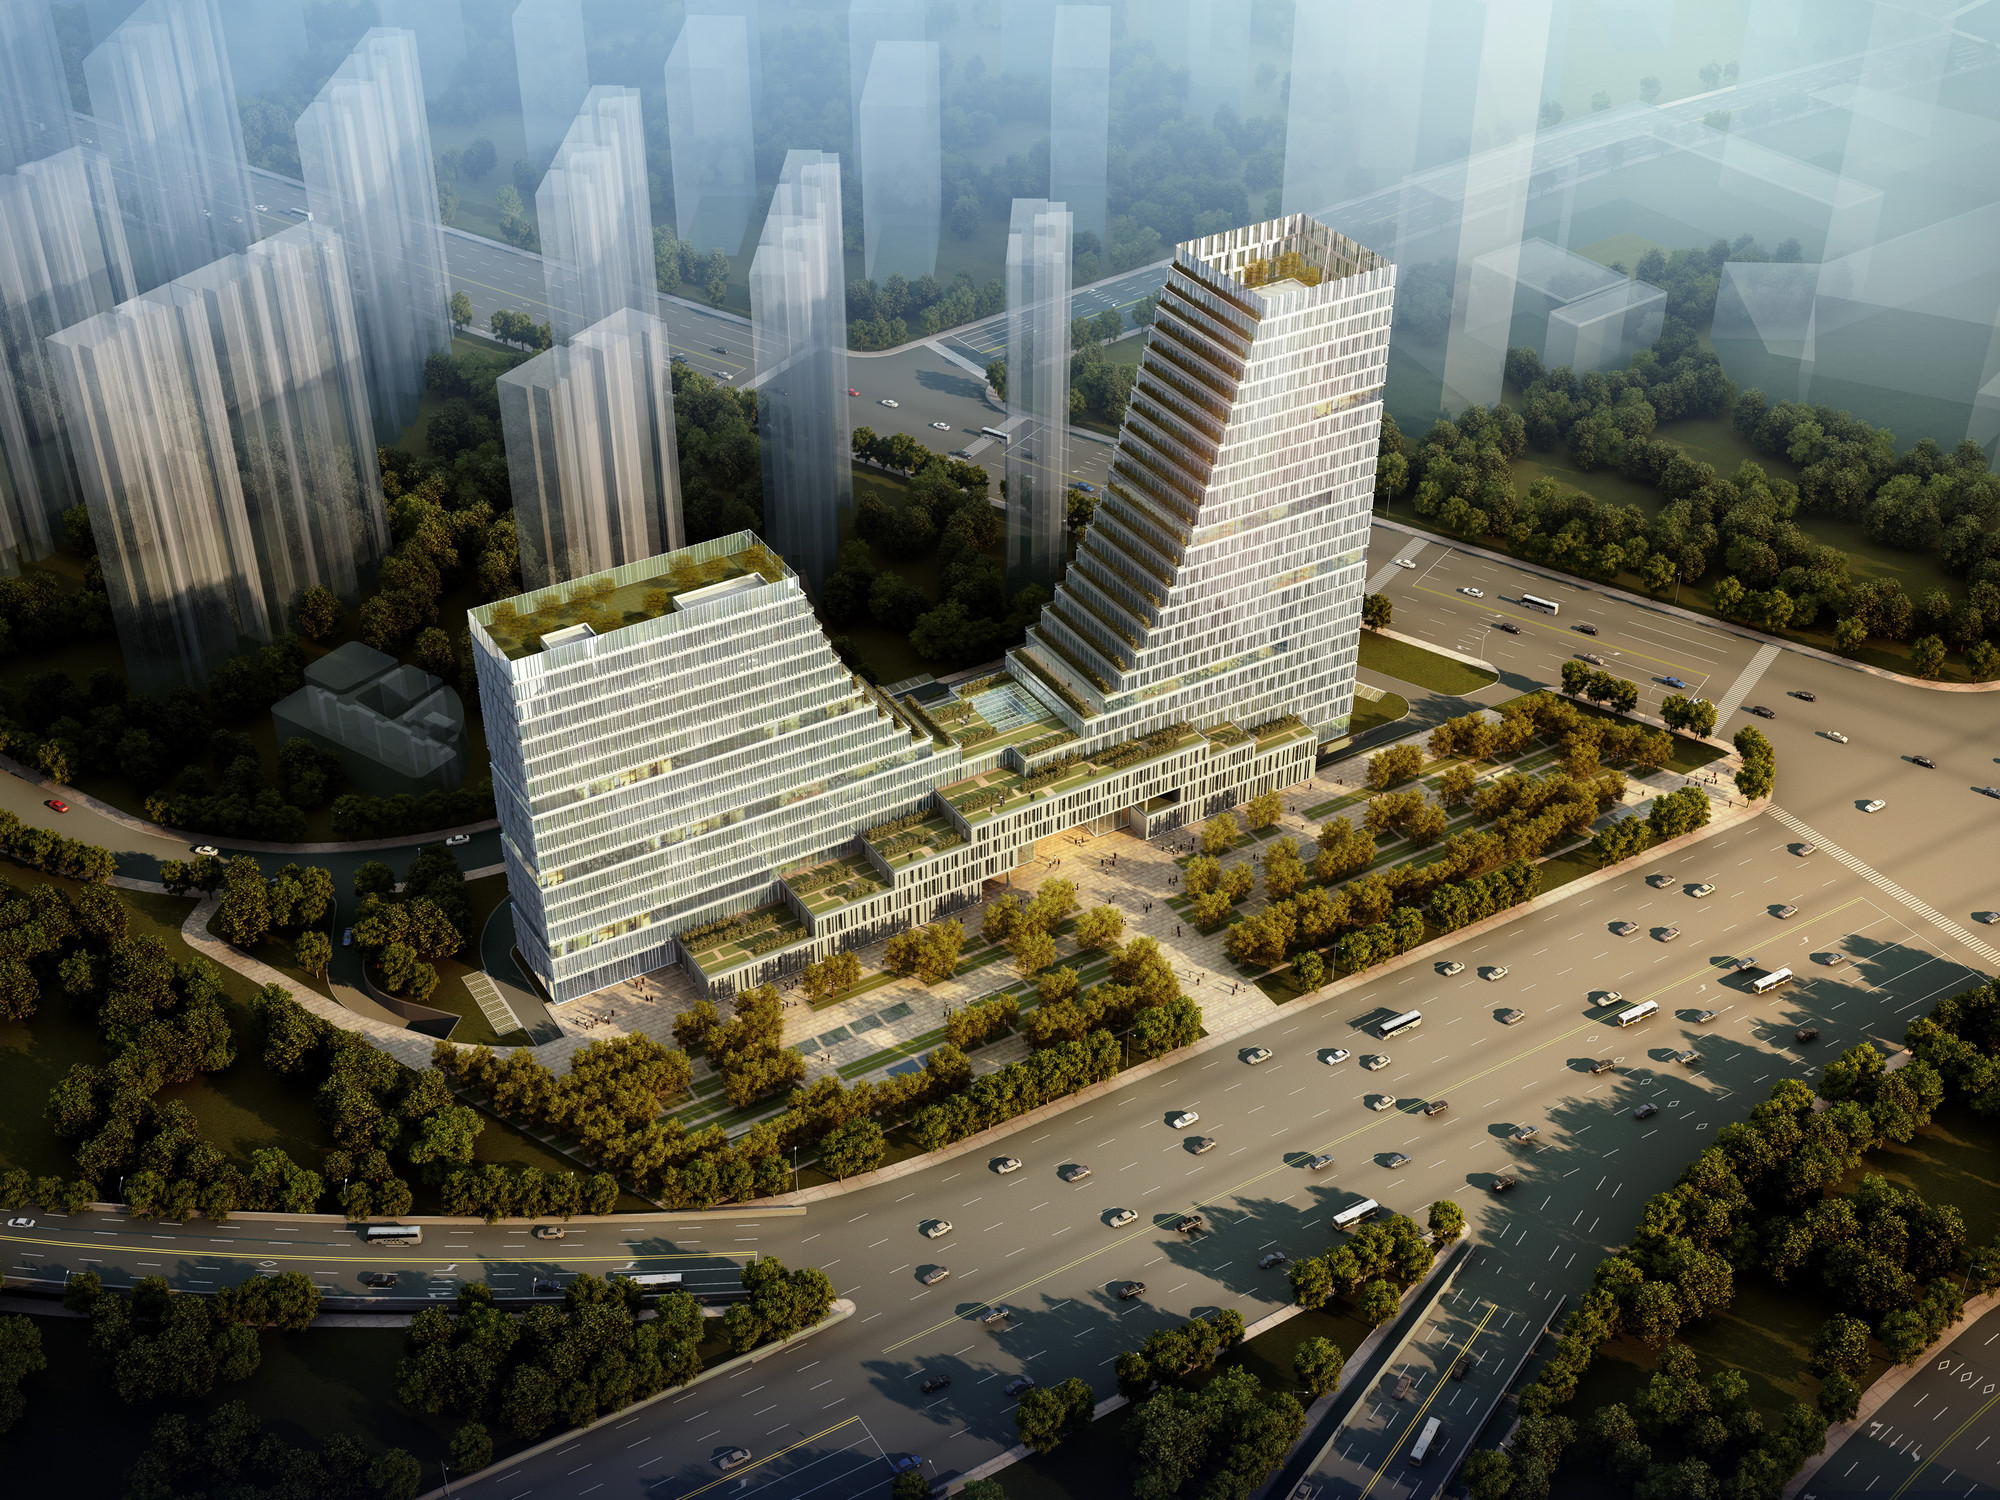 Construction Begins on UDG China's Nanjing Office Tower, Aerial. Image © Luxigon